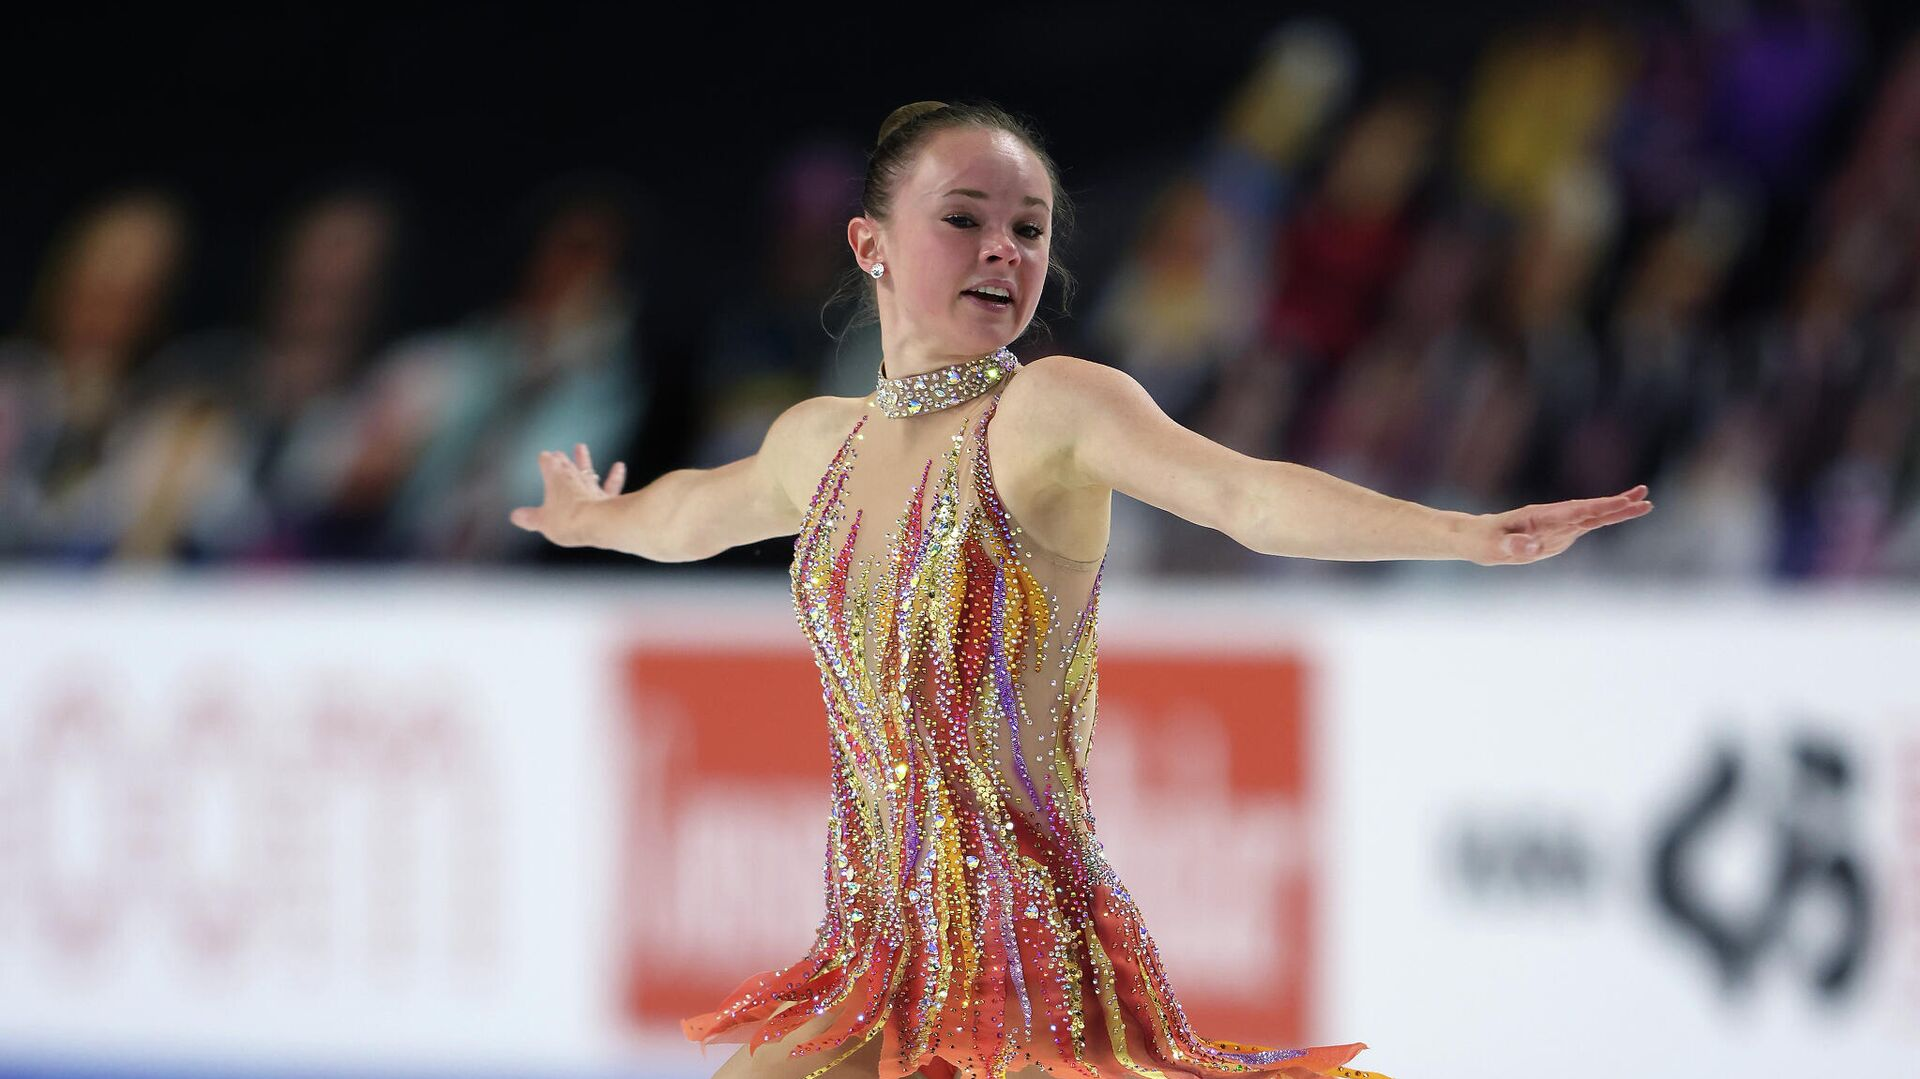 LAS VEGAS, NEVADA - OCTOBER 24: Mariah Bell of the USA competes in the Ladies Free Skating program during the ISU Grand Prix of Figure Skating at the Orleans Arena on October 24, 2020 in Las Vegas, Nevada.   Jamie Squire/Getty Images/AFP - РИА Новости, 1920, 24.10.2020